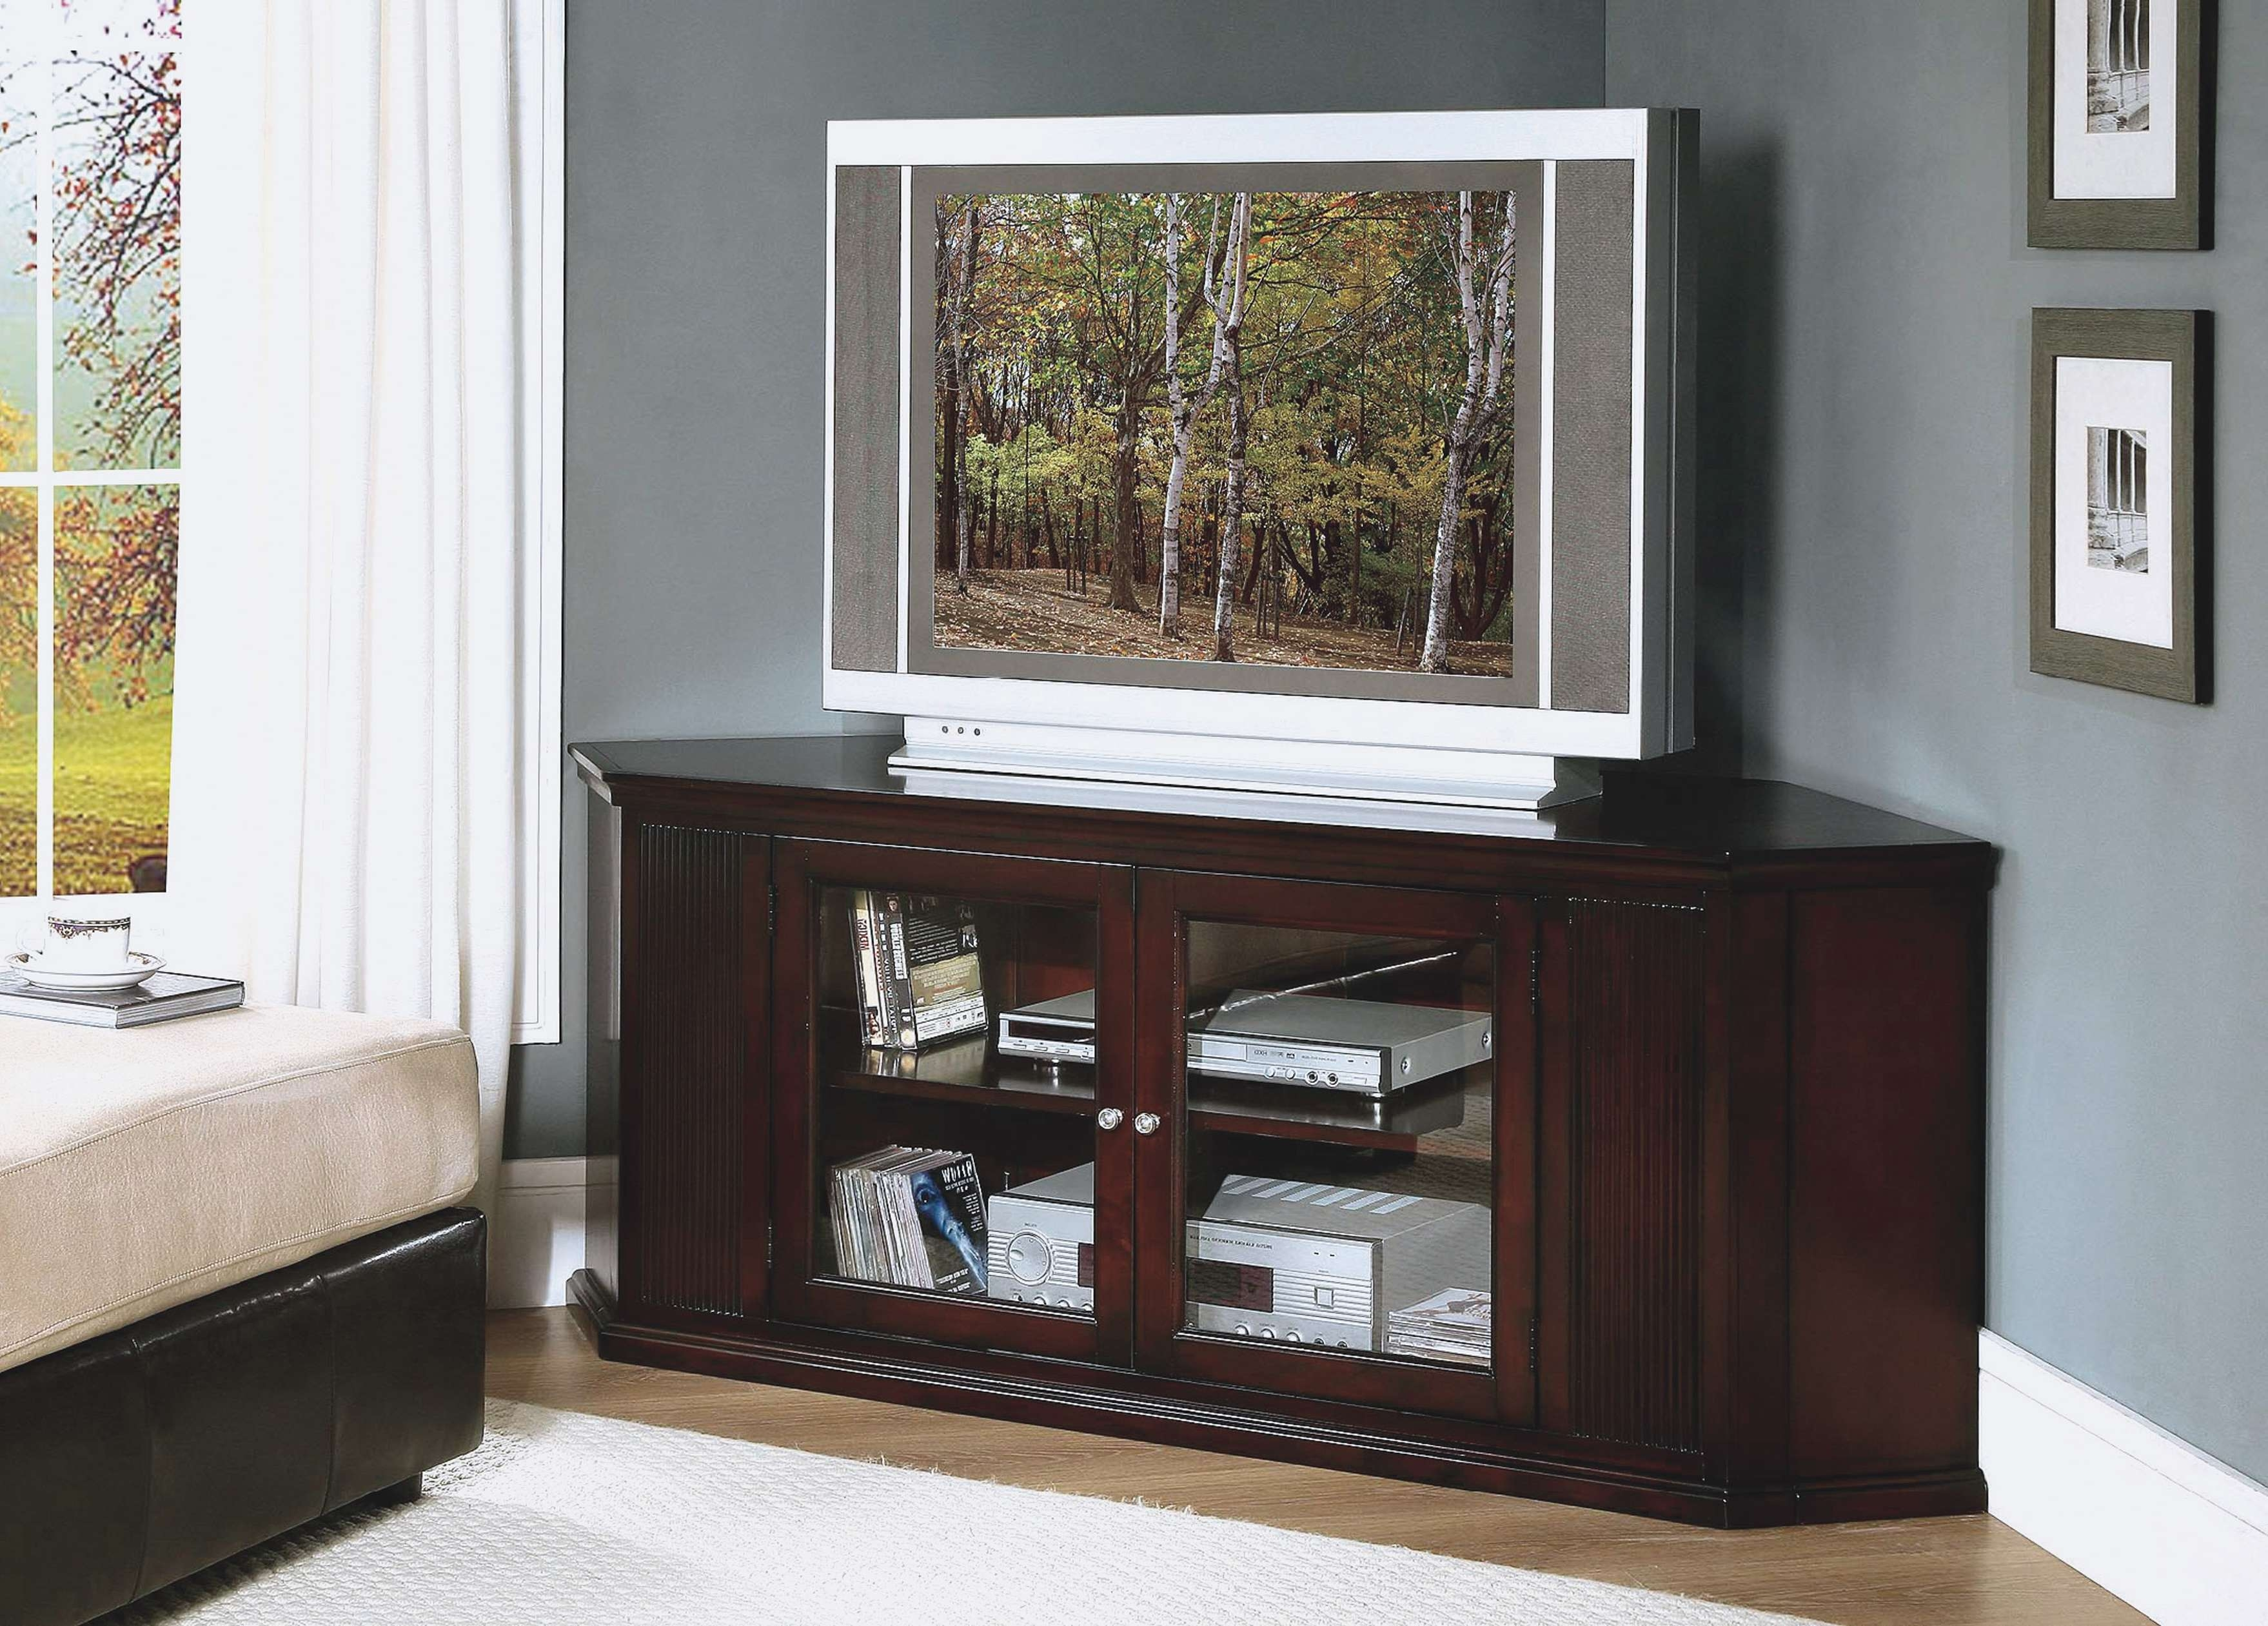 Corner Tv Cabinets For Flat Screens With Doors • Corner Cabinets Inside Corner Tv Cabinets For Flat Screens (View 5 of 20)